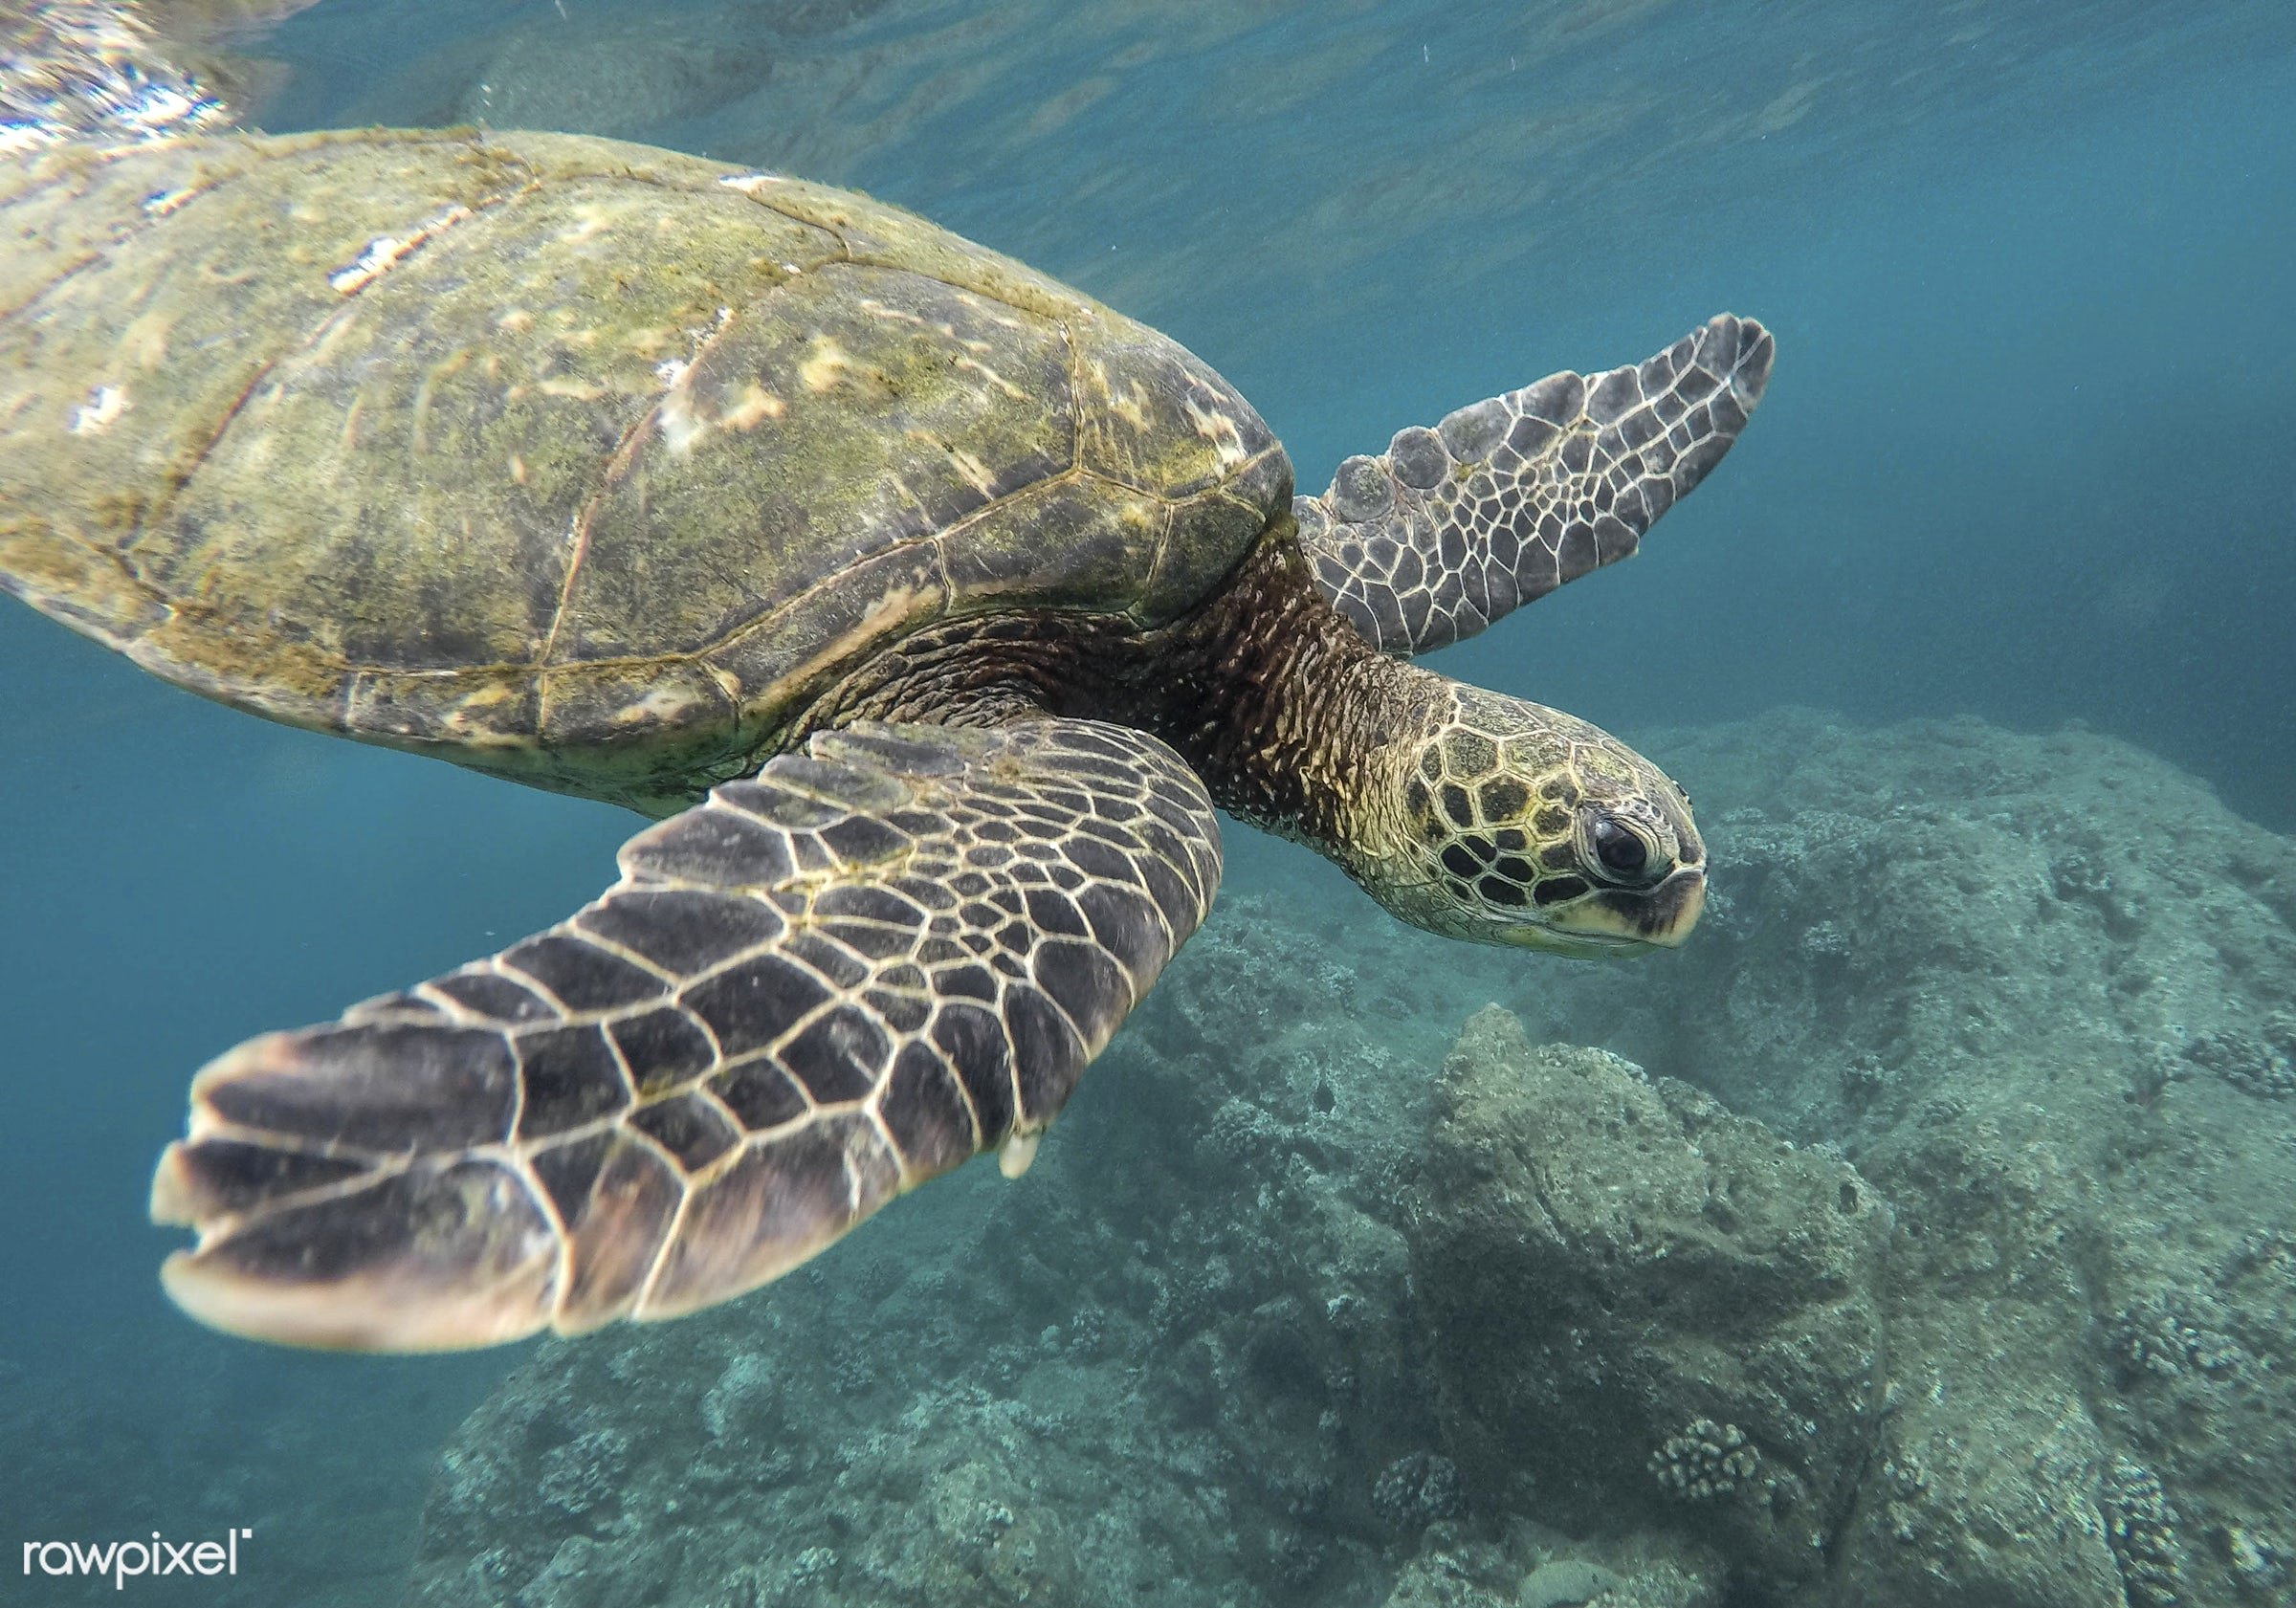 A turtle under the water in Oahu, Hawaii - america, animal, background, blue, clear, coast, diving, fins, hawaii, marine...